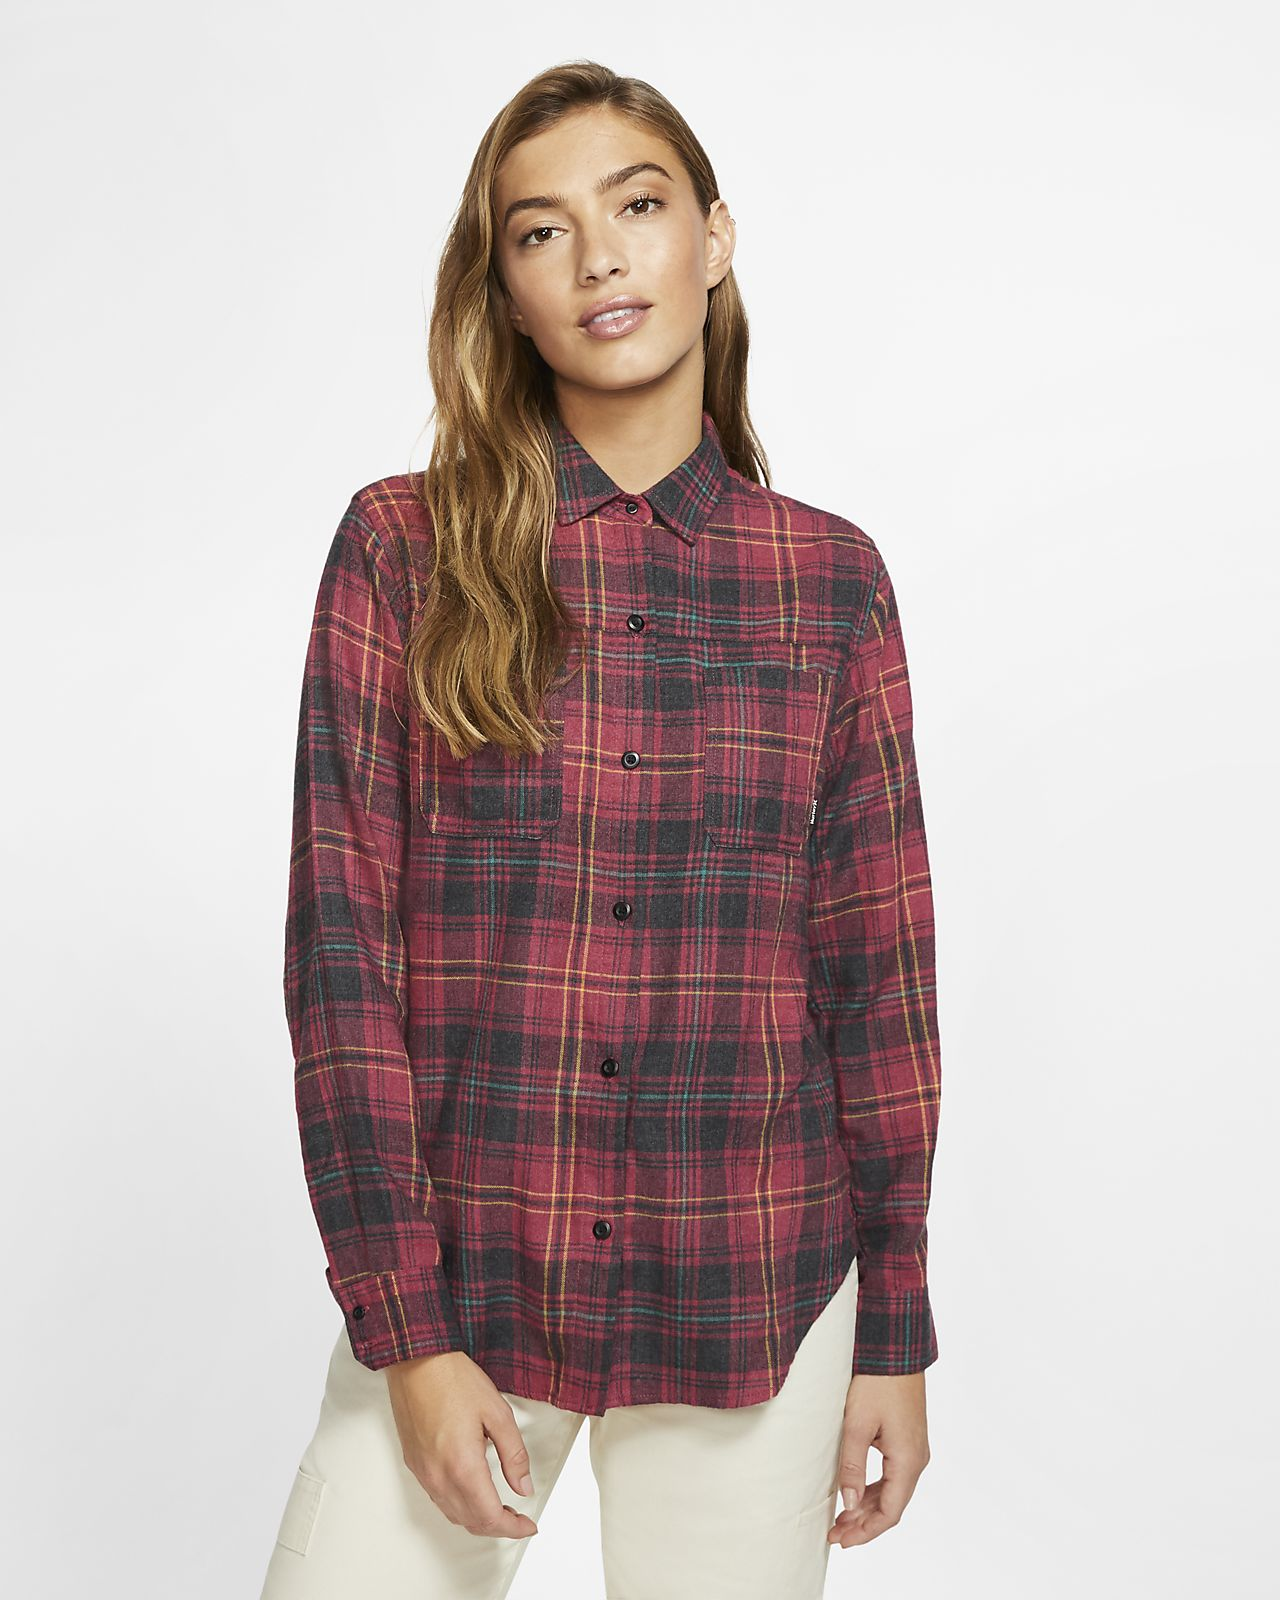 Hurley Wilson Checked Women's Long-Sleeve Flannel